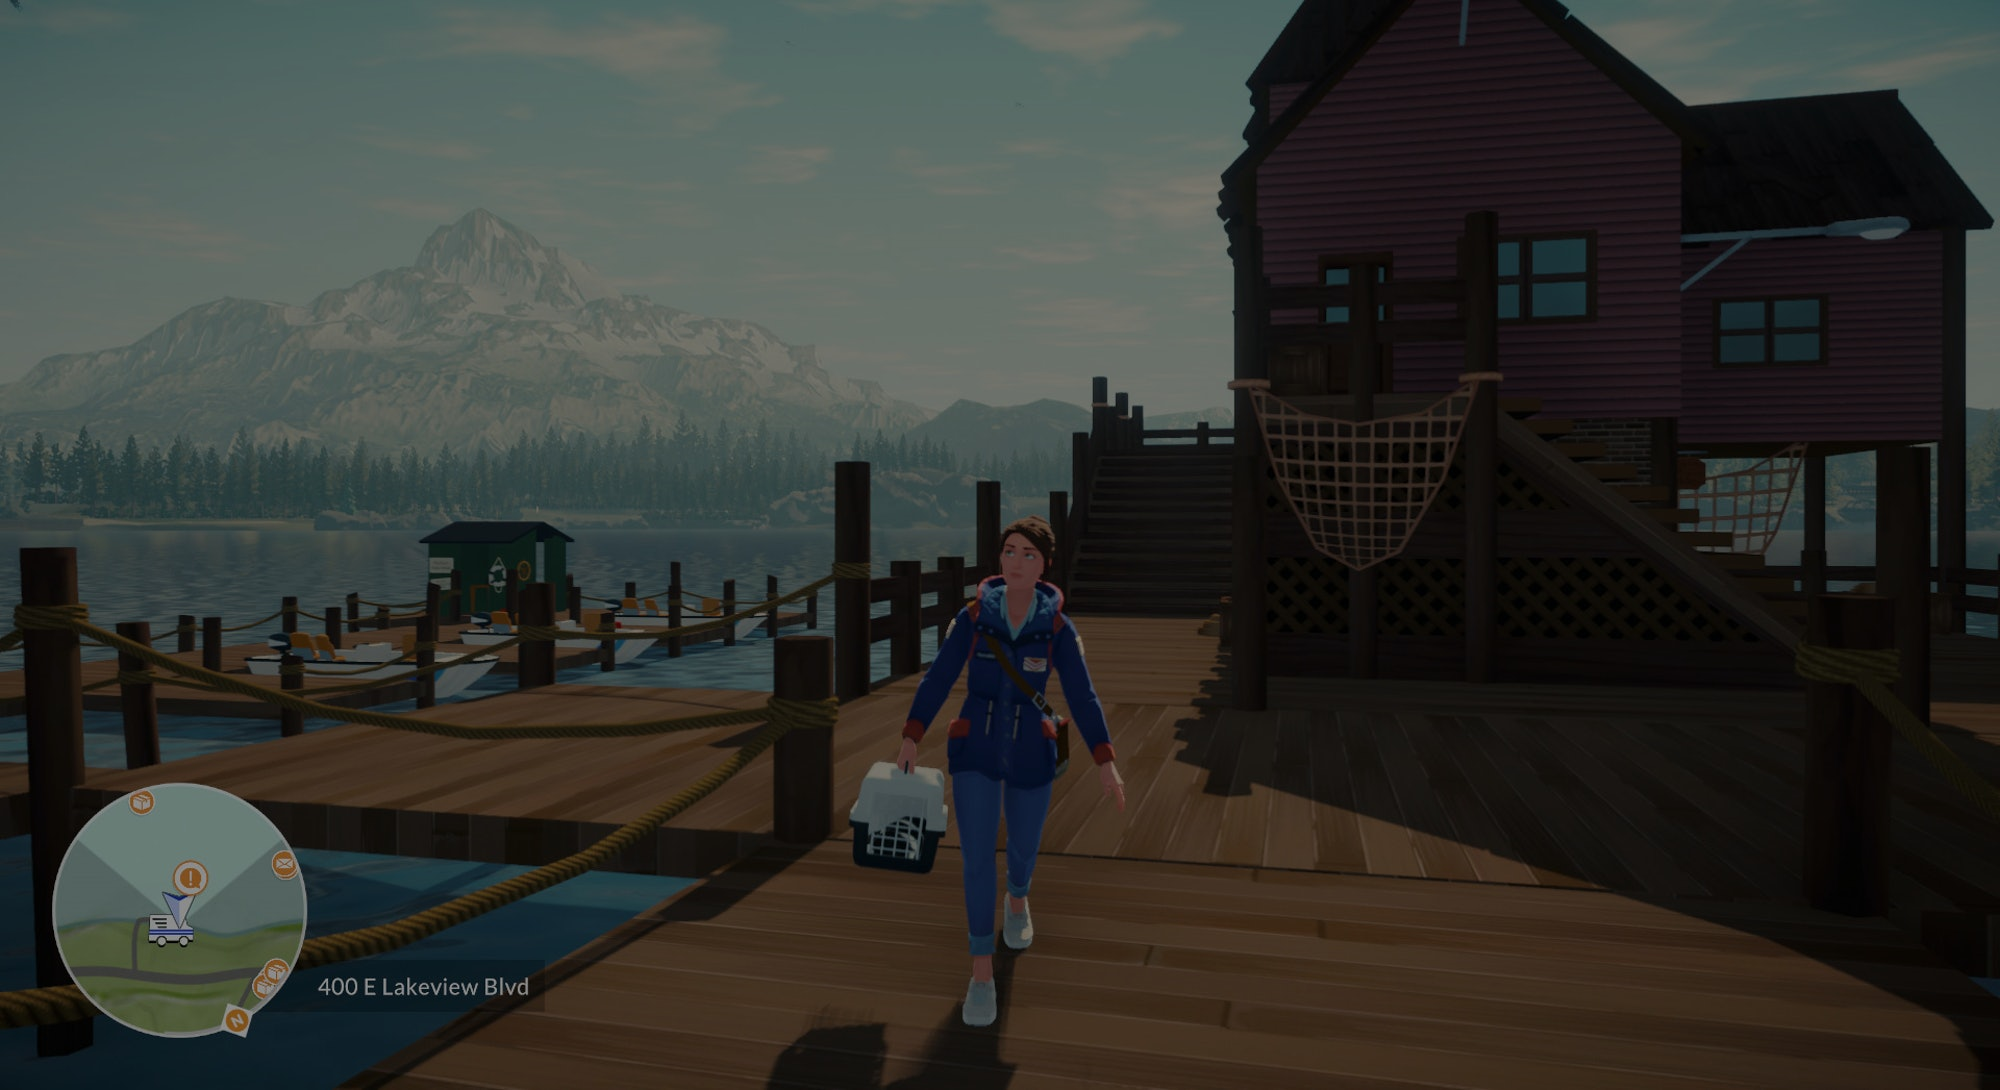 screenshot of woman with cat carrier on dock from Lake video game